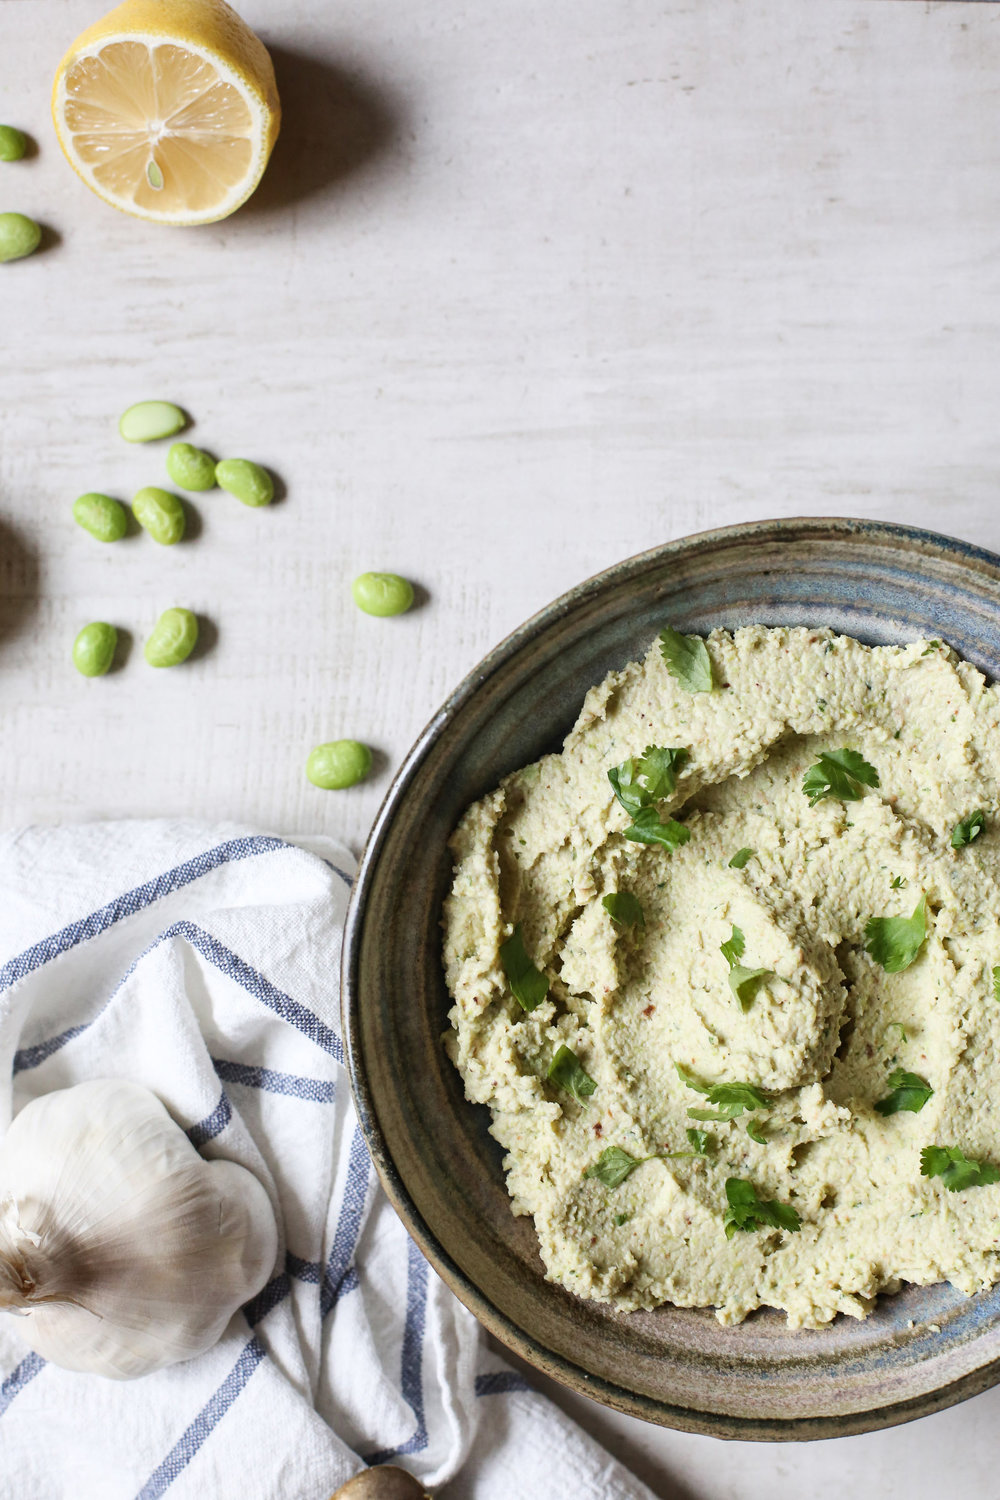 ROASTED CAULI + EDAMAME HUMMUS - Another healthy dip that's perfect for in advance (even a few days advance). Plus, it's green (Duh!), so it really doesn't get more festive than this.